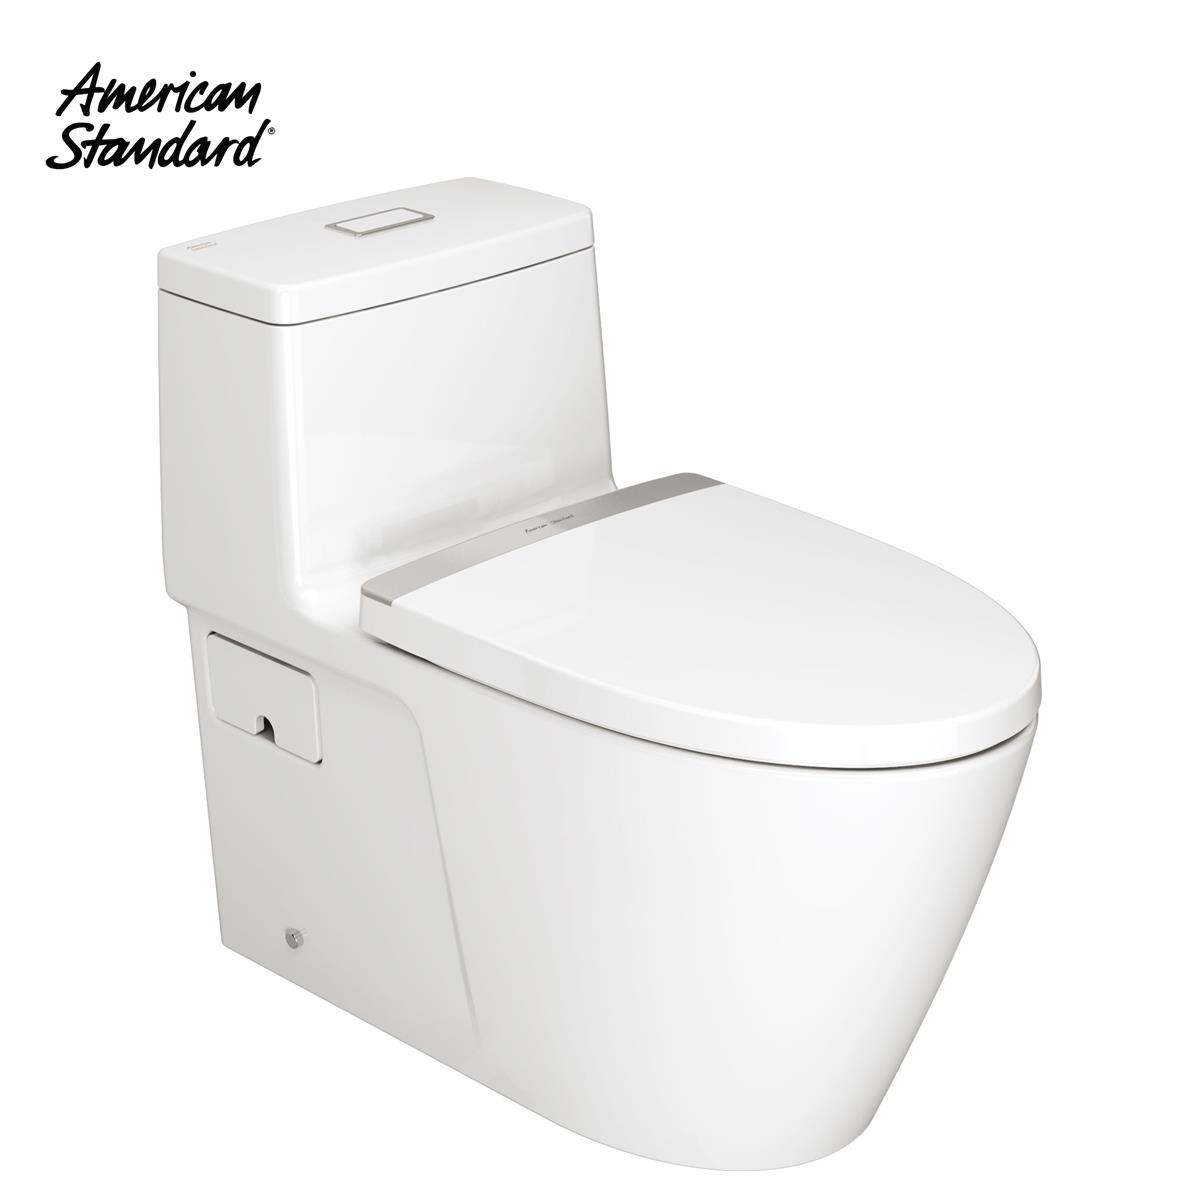 American Standard Tf2007 Acacia Evolution One Piece Water